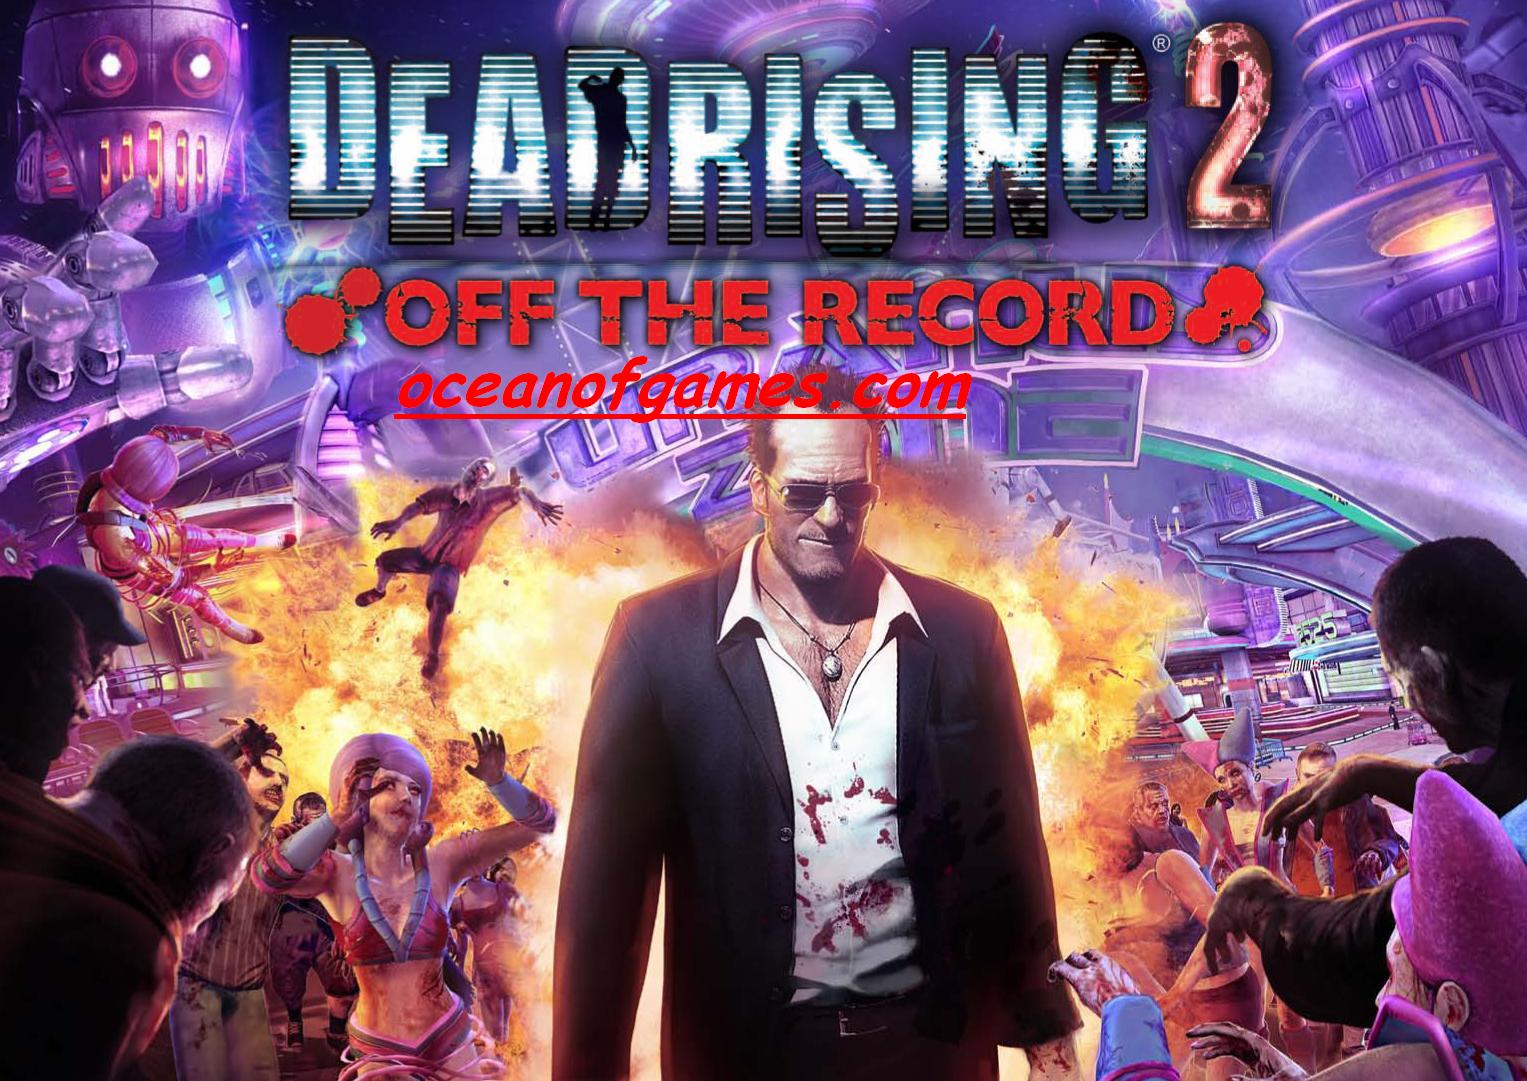 dead rising 2 off the record pc free